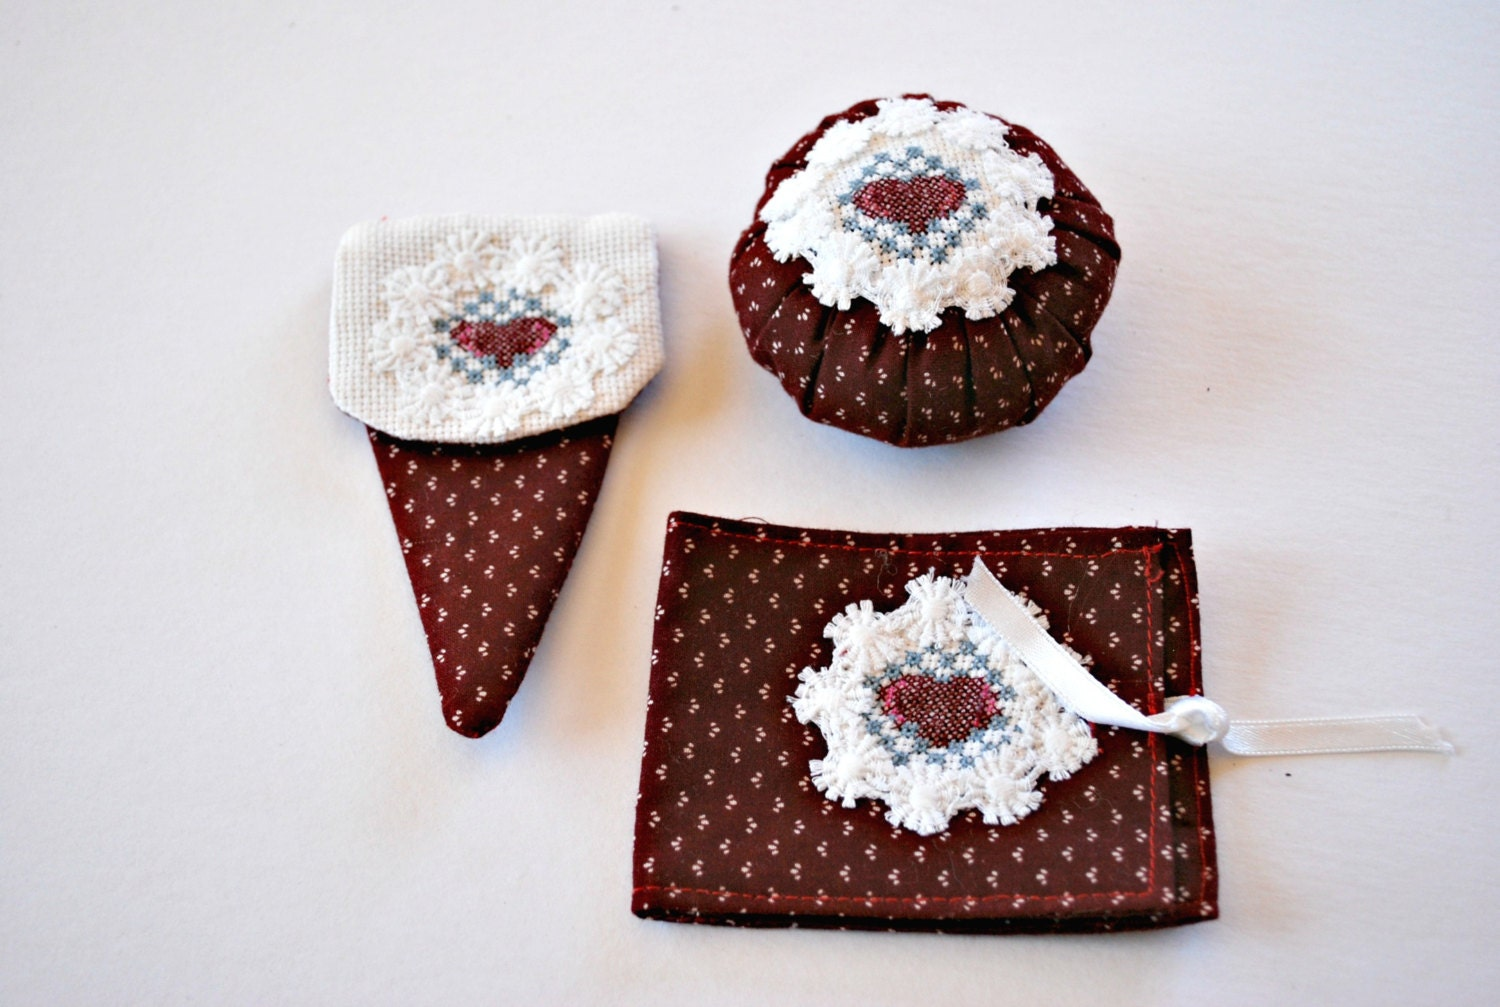 Heart sewing kit craft supplies and tools sewing and for Sewing and craft supplies